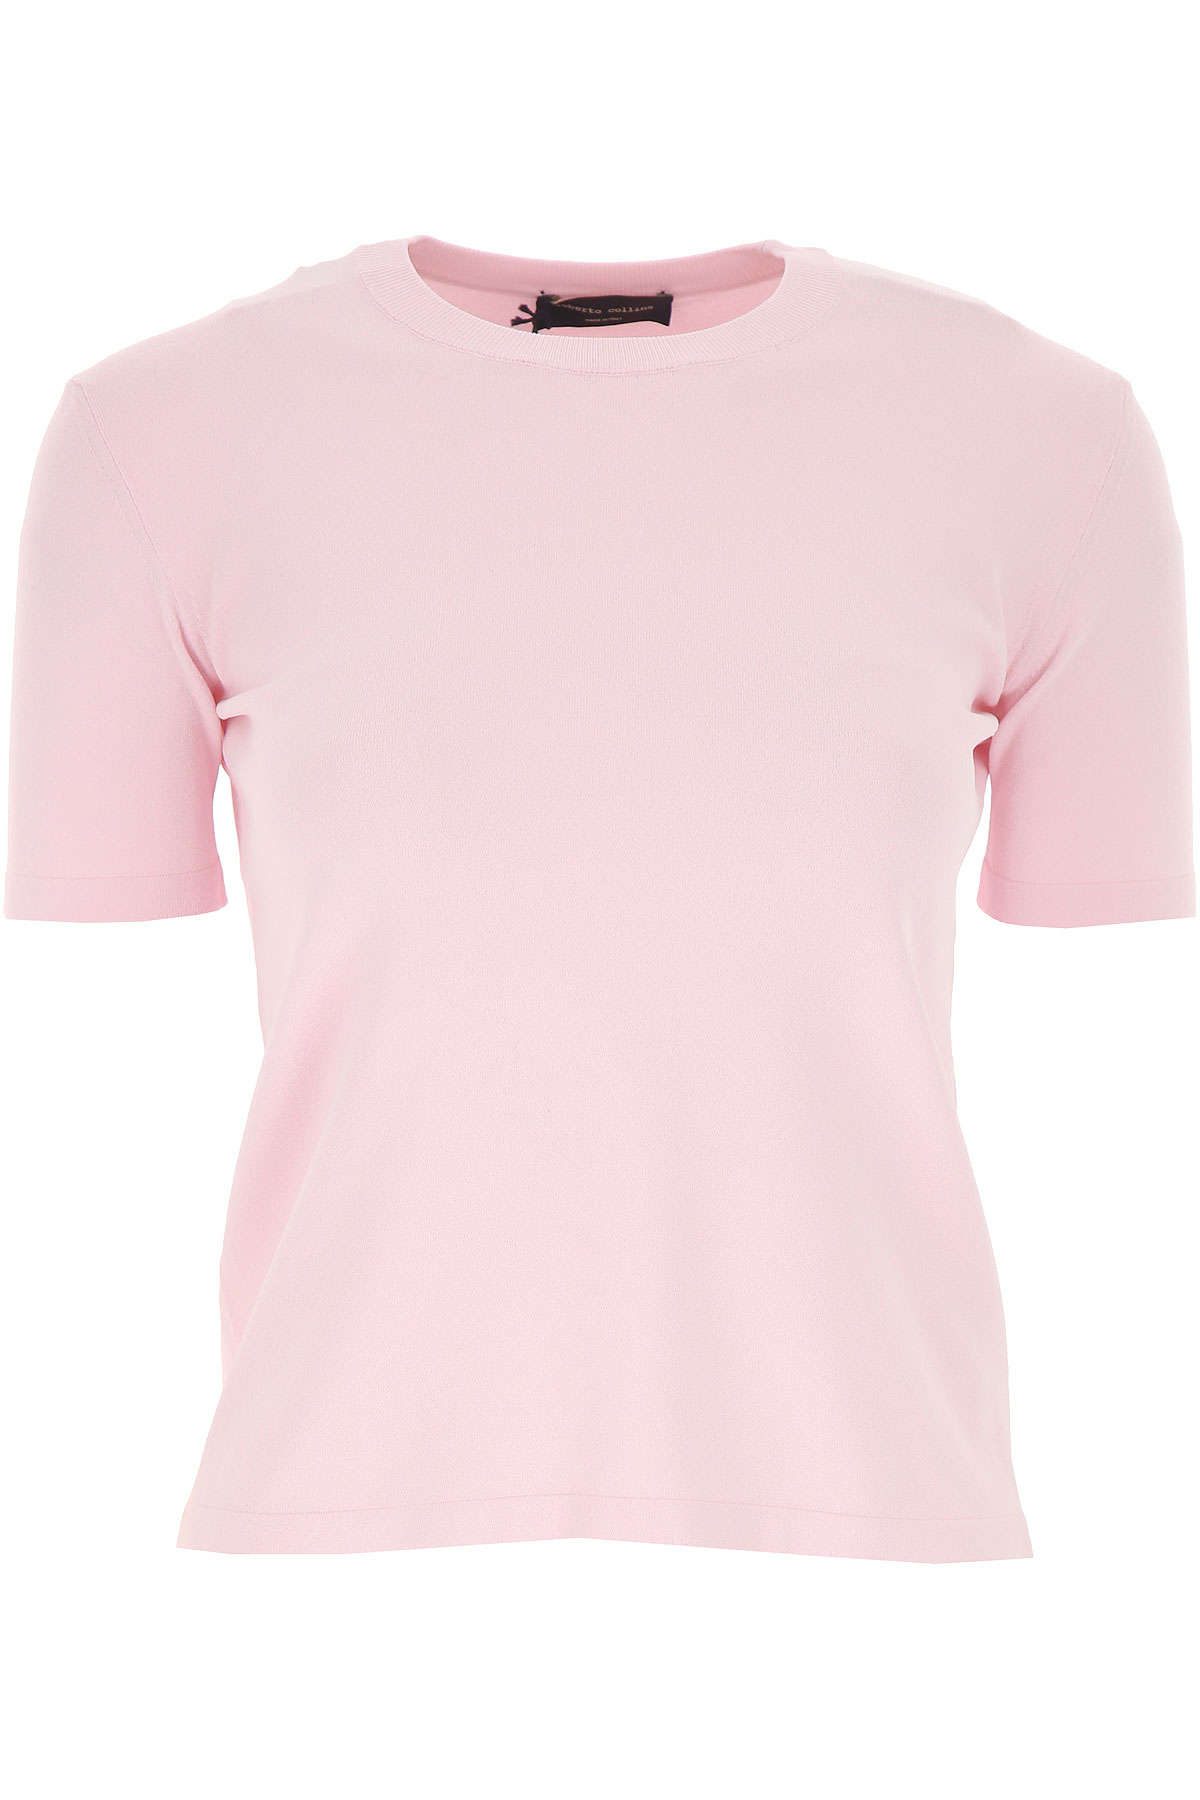 Roberto Collina Top for Women On Sale, Pink, viscosa, 2019, 4 6